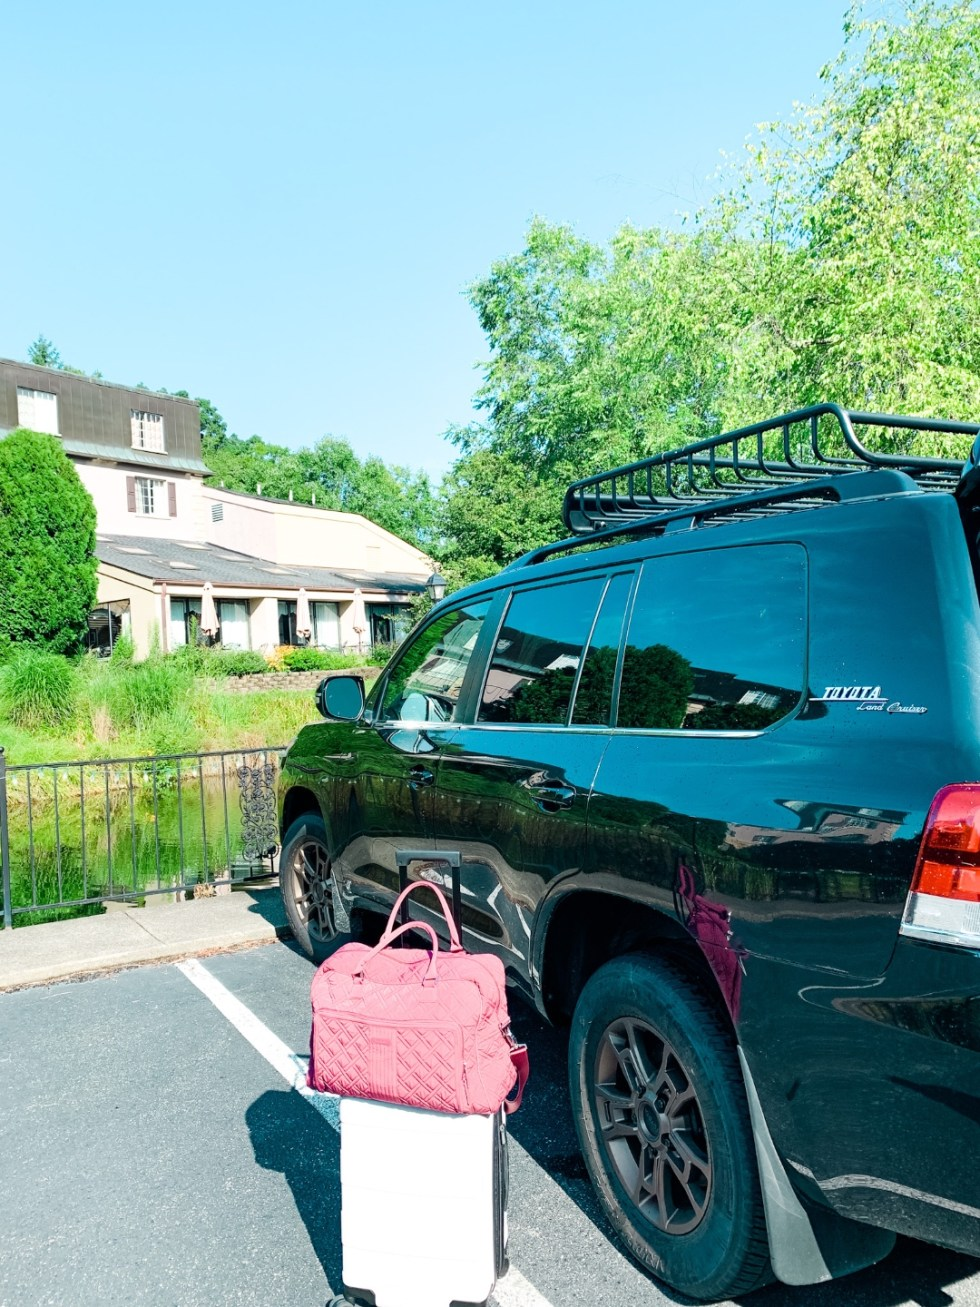 Meadow Brook Inn Blowing Rock by popular N.C. travel blog, I'm Fixin' To: image of a black Toyota parked at Meadow Brook Inn.